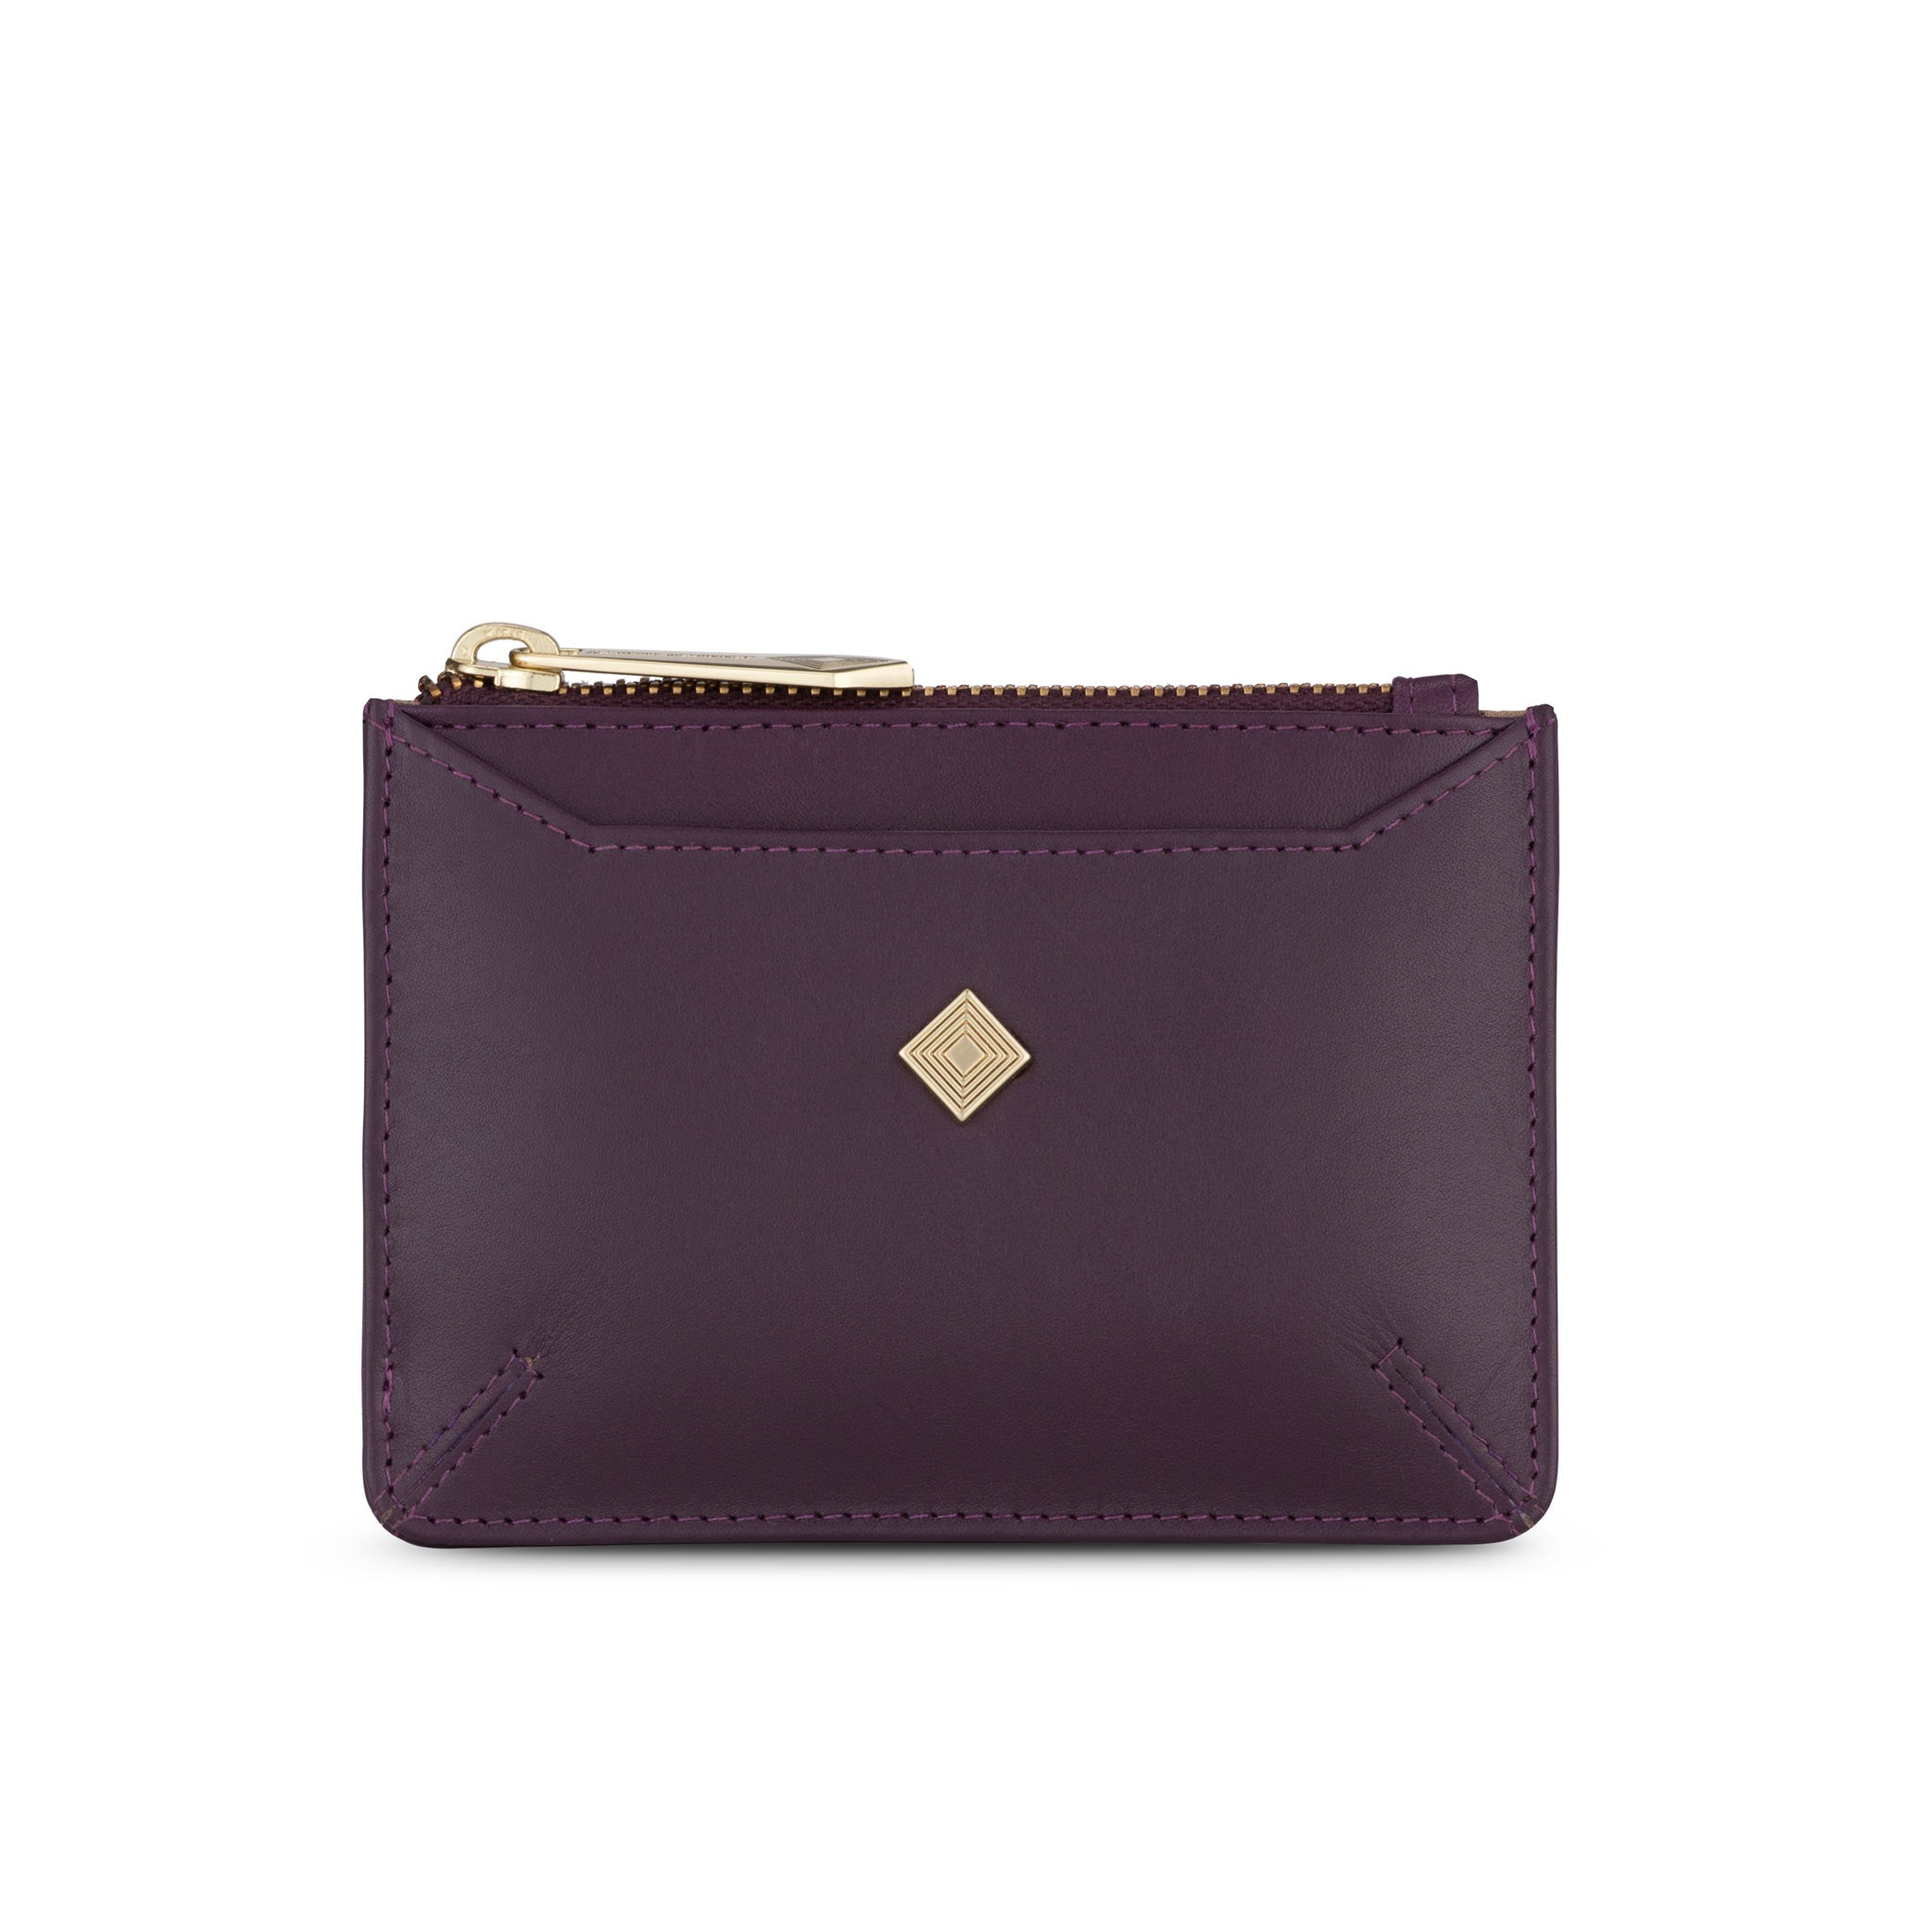 Sakura Purse in Aubergine Leather - SALE - Jennifer Hamley luxury leather handbags and laptop bag for working women